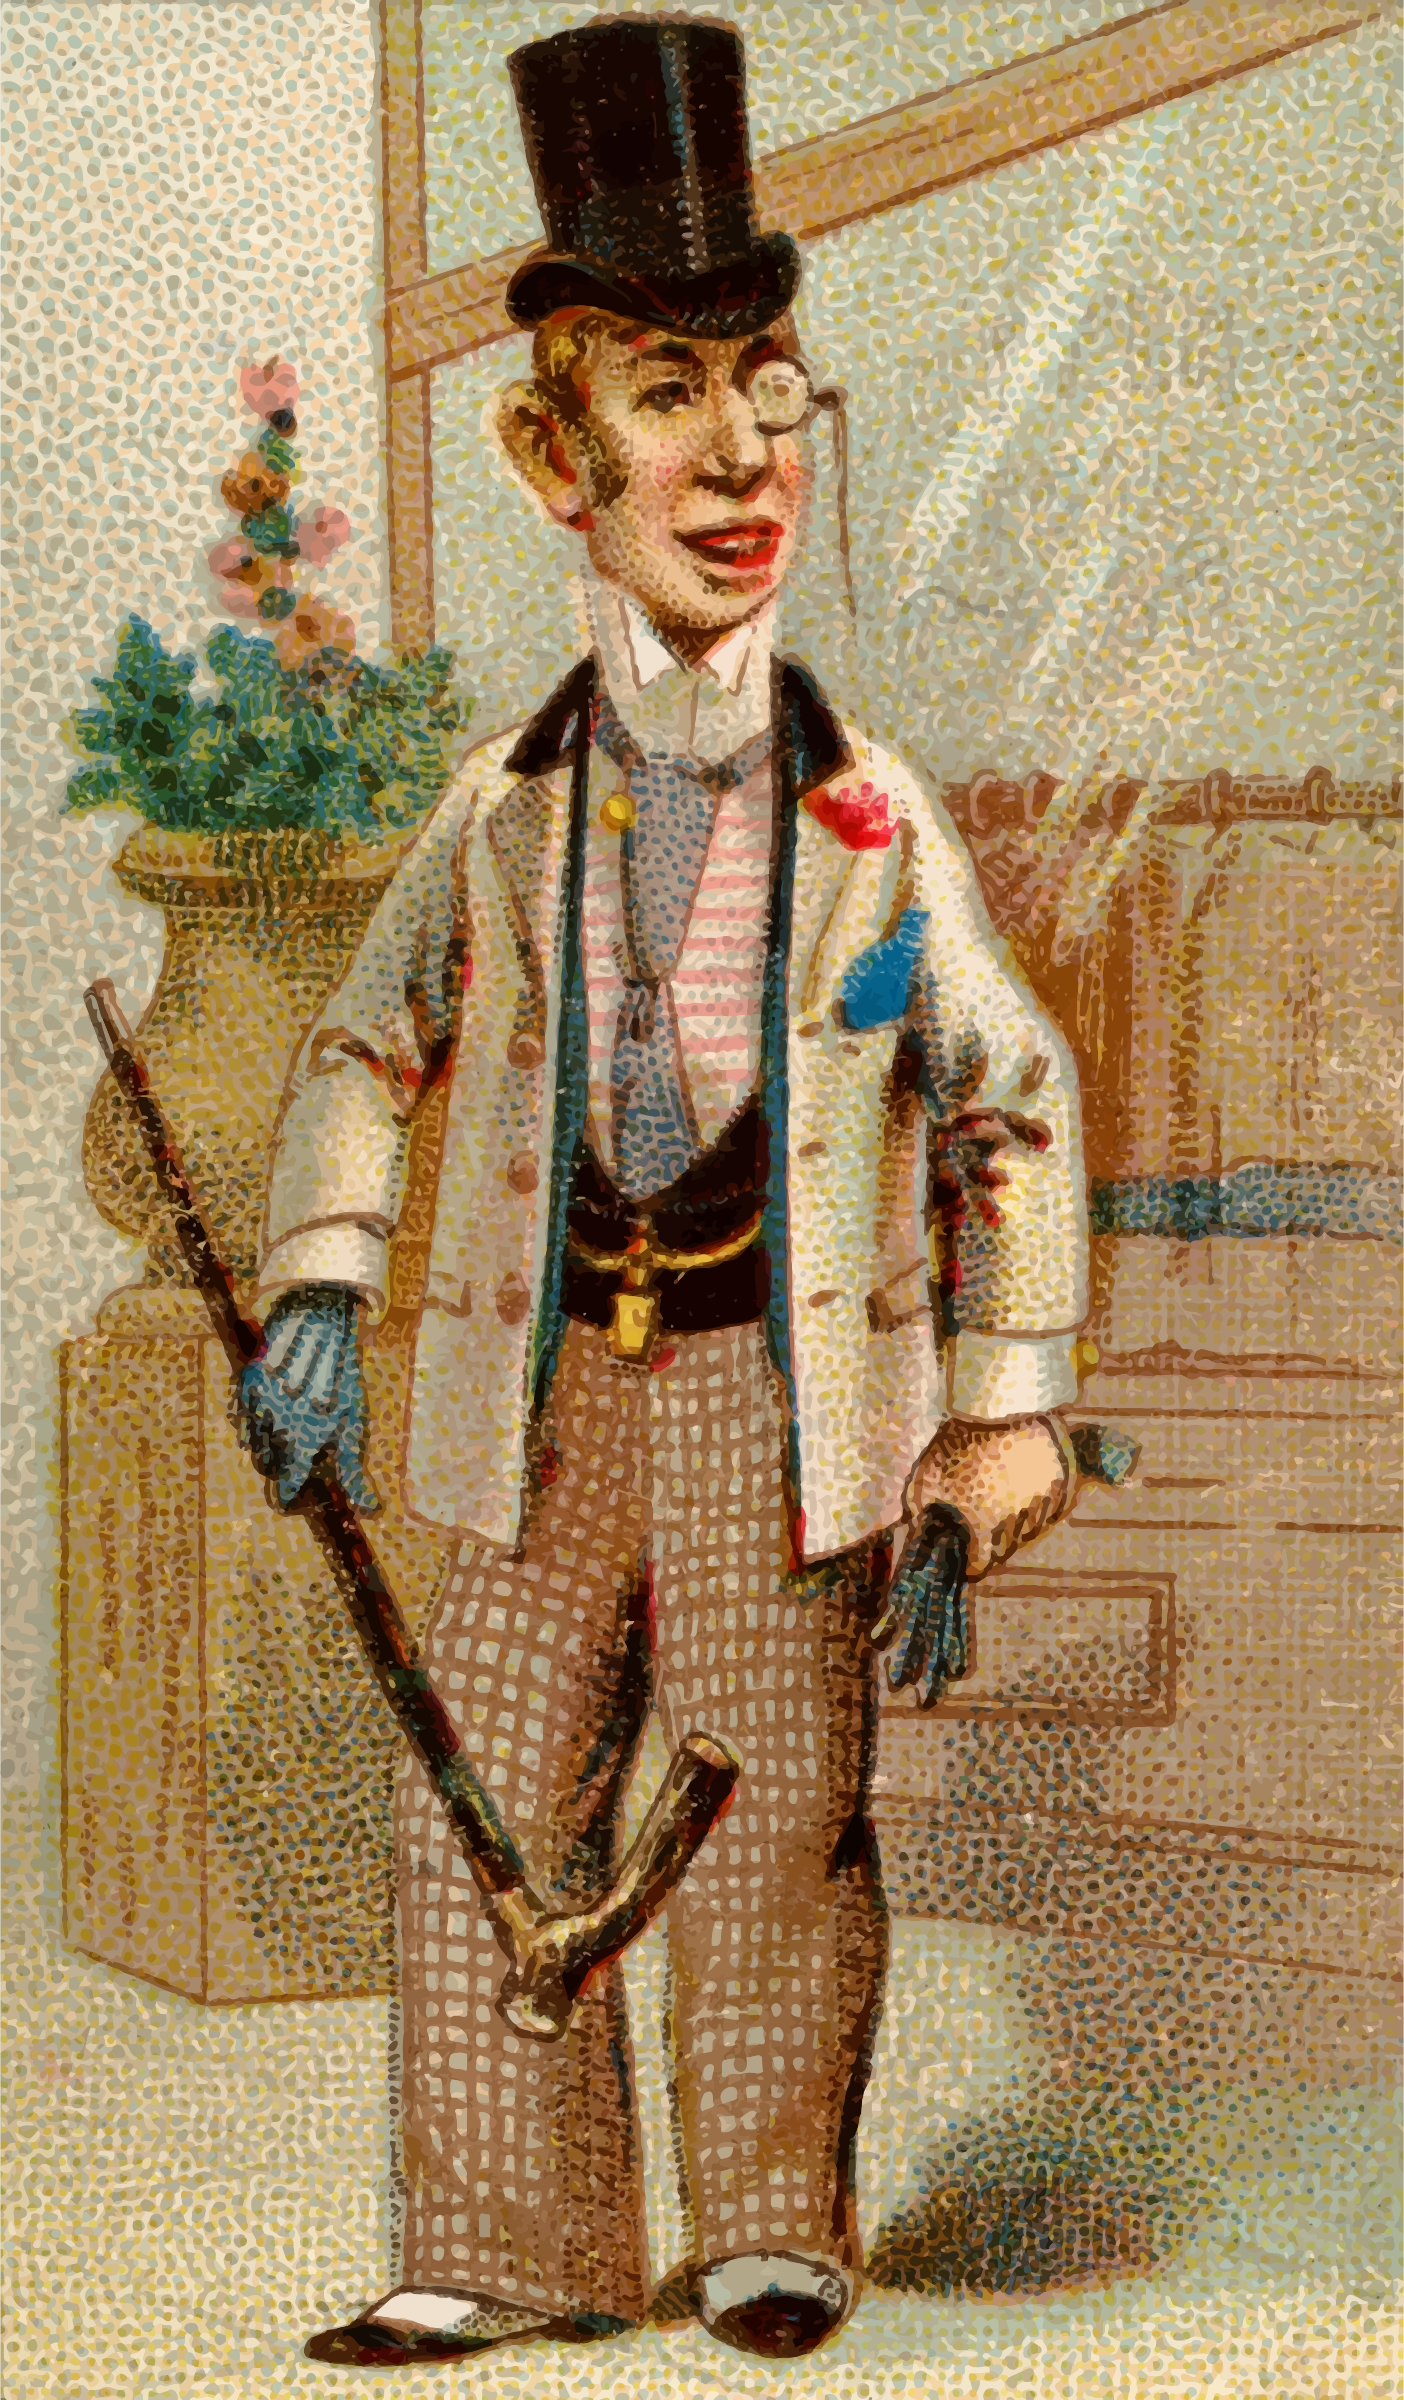 Cigarette card - Hoboken by Firkin